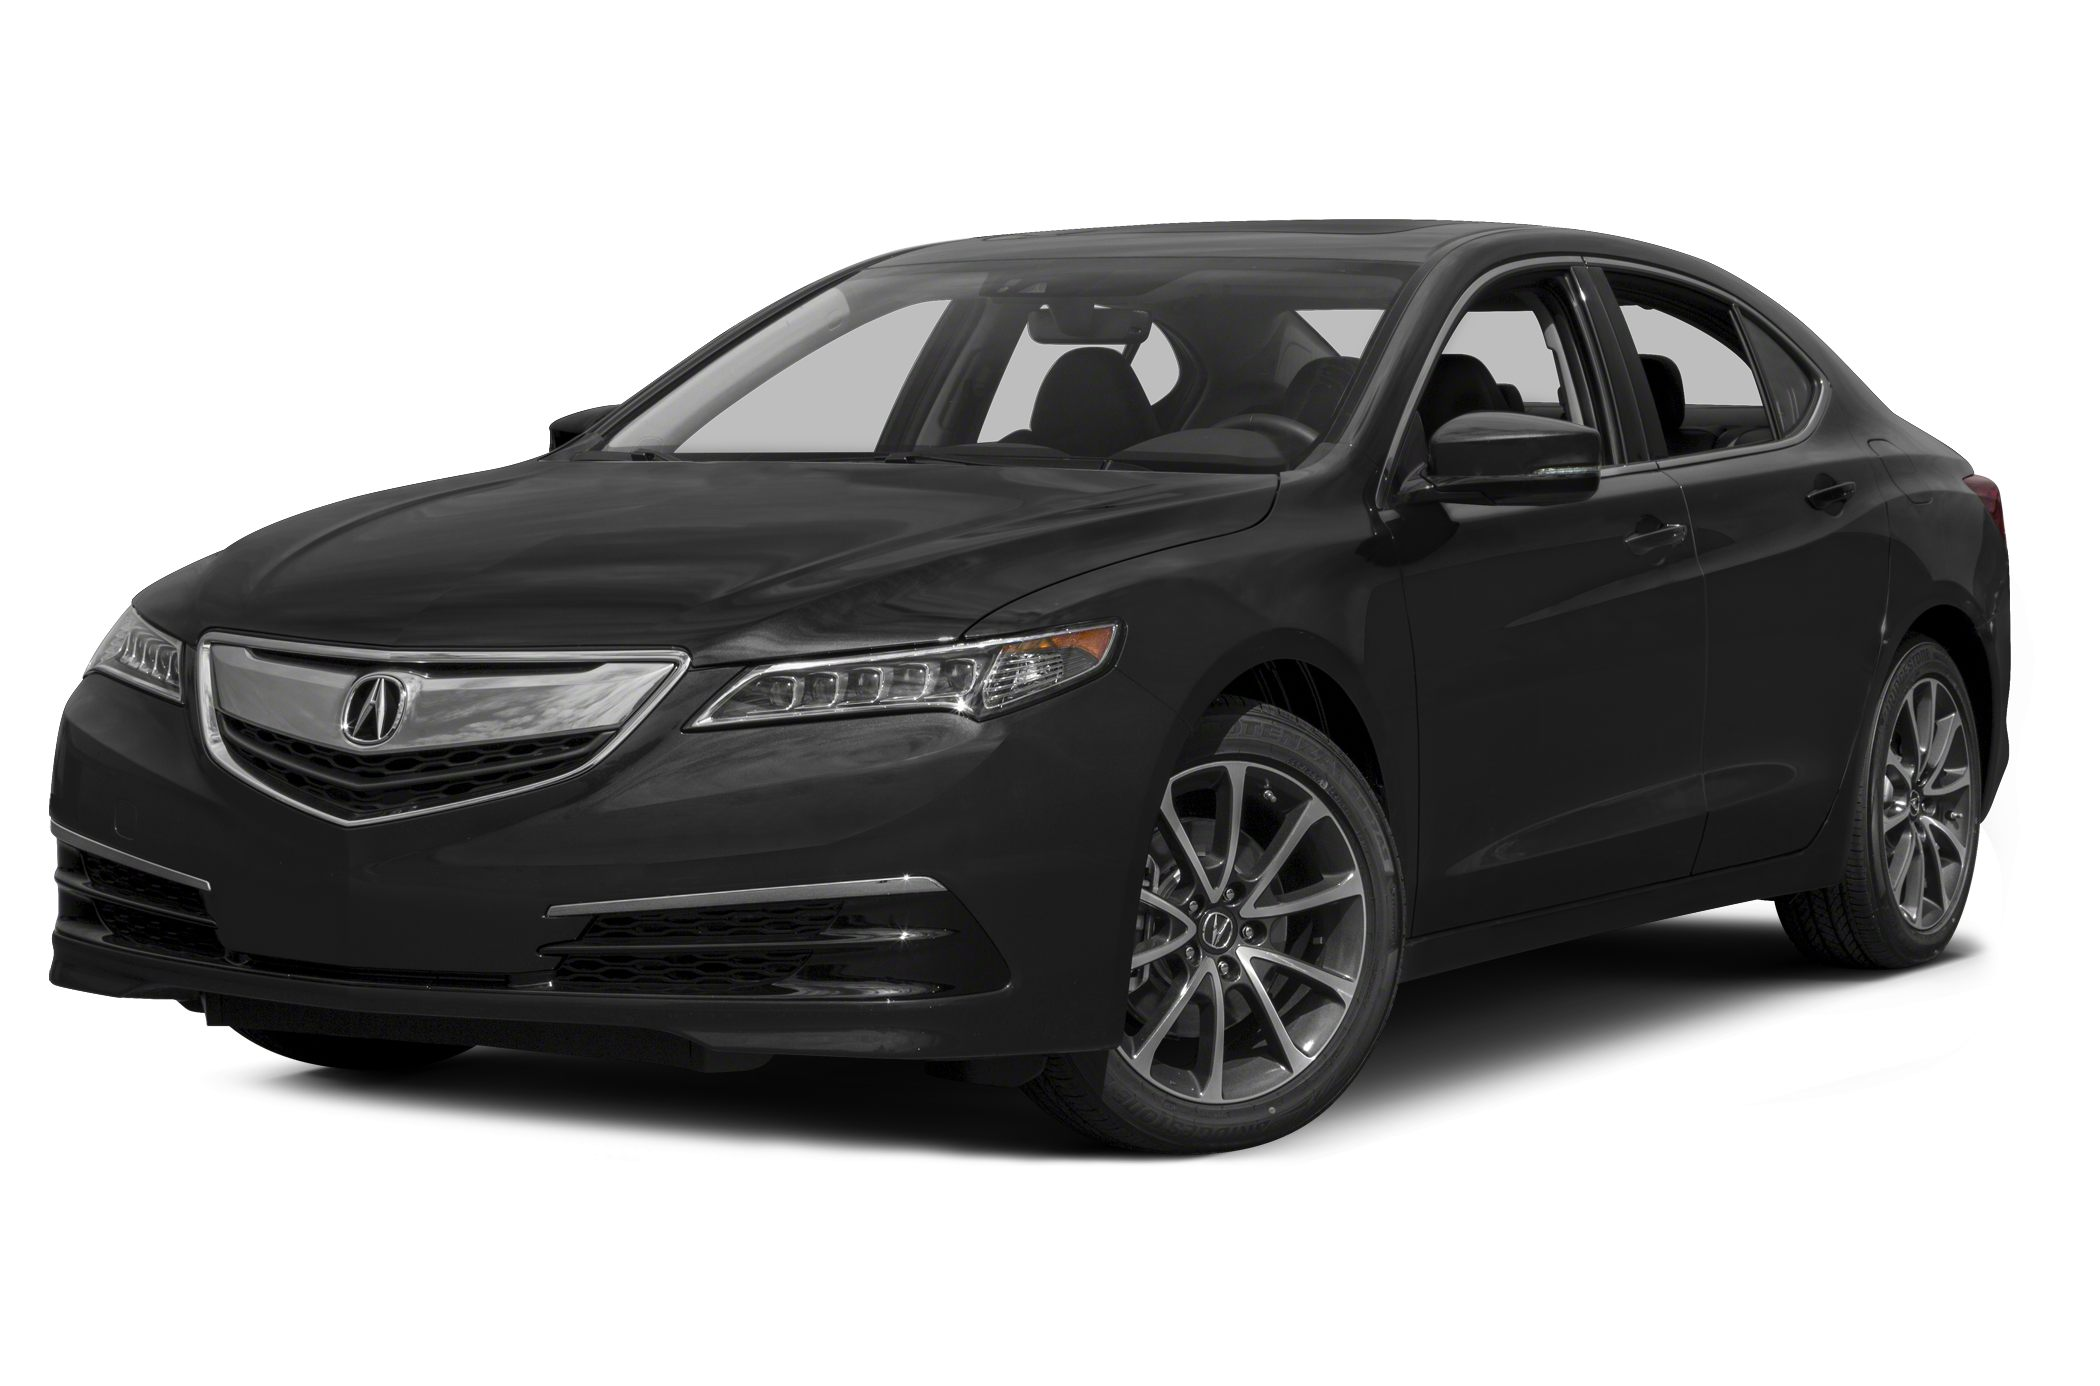 2015 Acura TLX V6 Tech Sedan for sale in Minneapolis for $40,295 with 15 miles